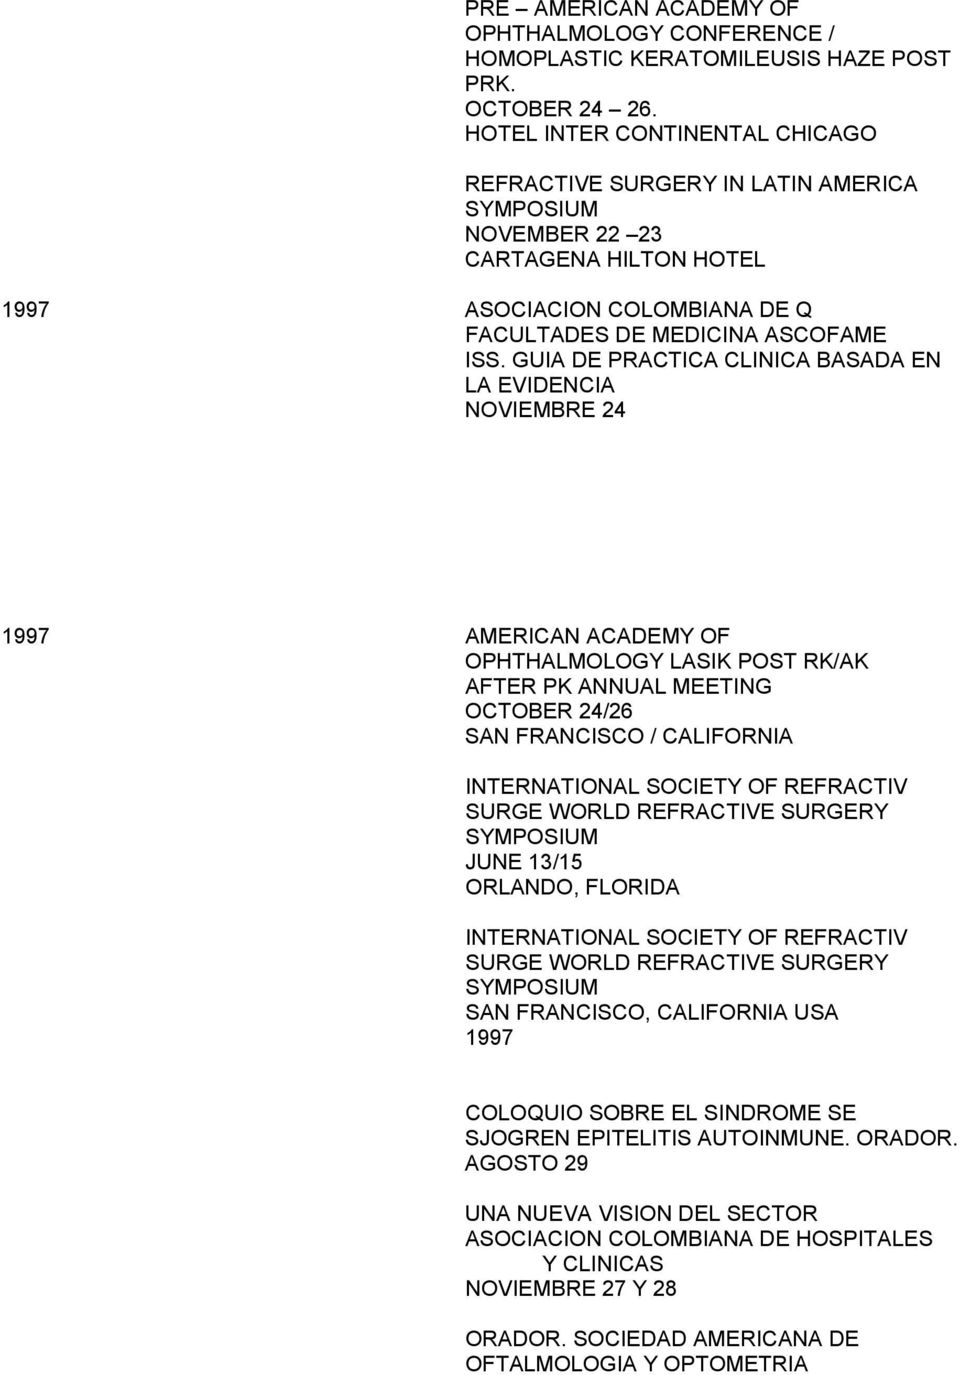 GUIA DE PRACTICA CLINICA BASADA EN LA EVIDENCIA NOVIEMBRE 24 1997 AMERICAN ACADEMY OF OPHTHALMOLOGY LASIK POST RK/AK AFTER PK ANNUAL MEETING OCTOBER 24/26 SAN FRANCISCO / CALIFORNIA INTERNATIONAL